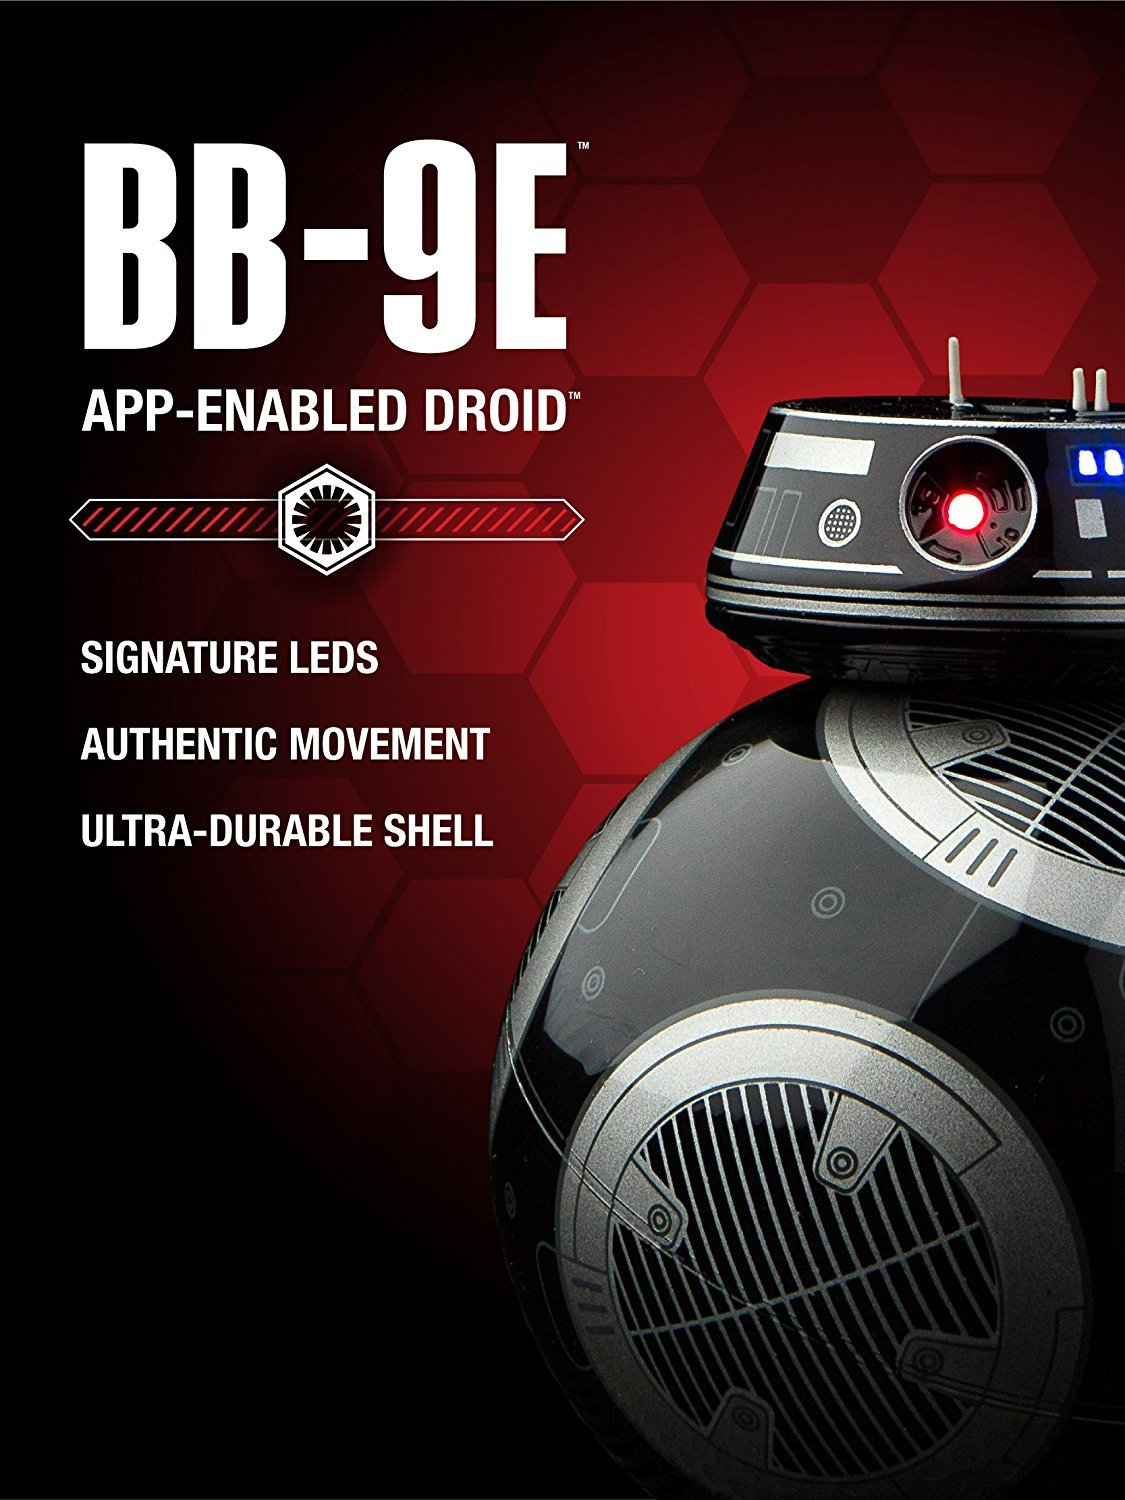 Sp hero BB-9E App-Enabled Droid with Trainer - wiihuu